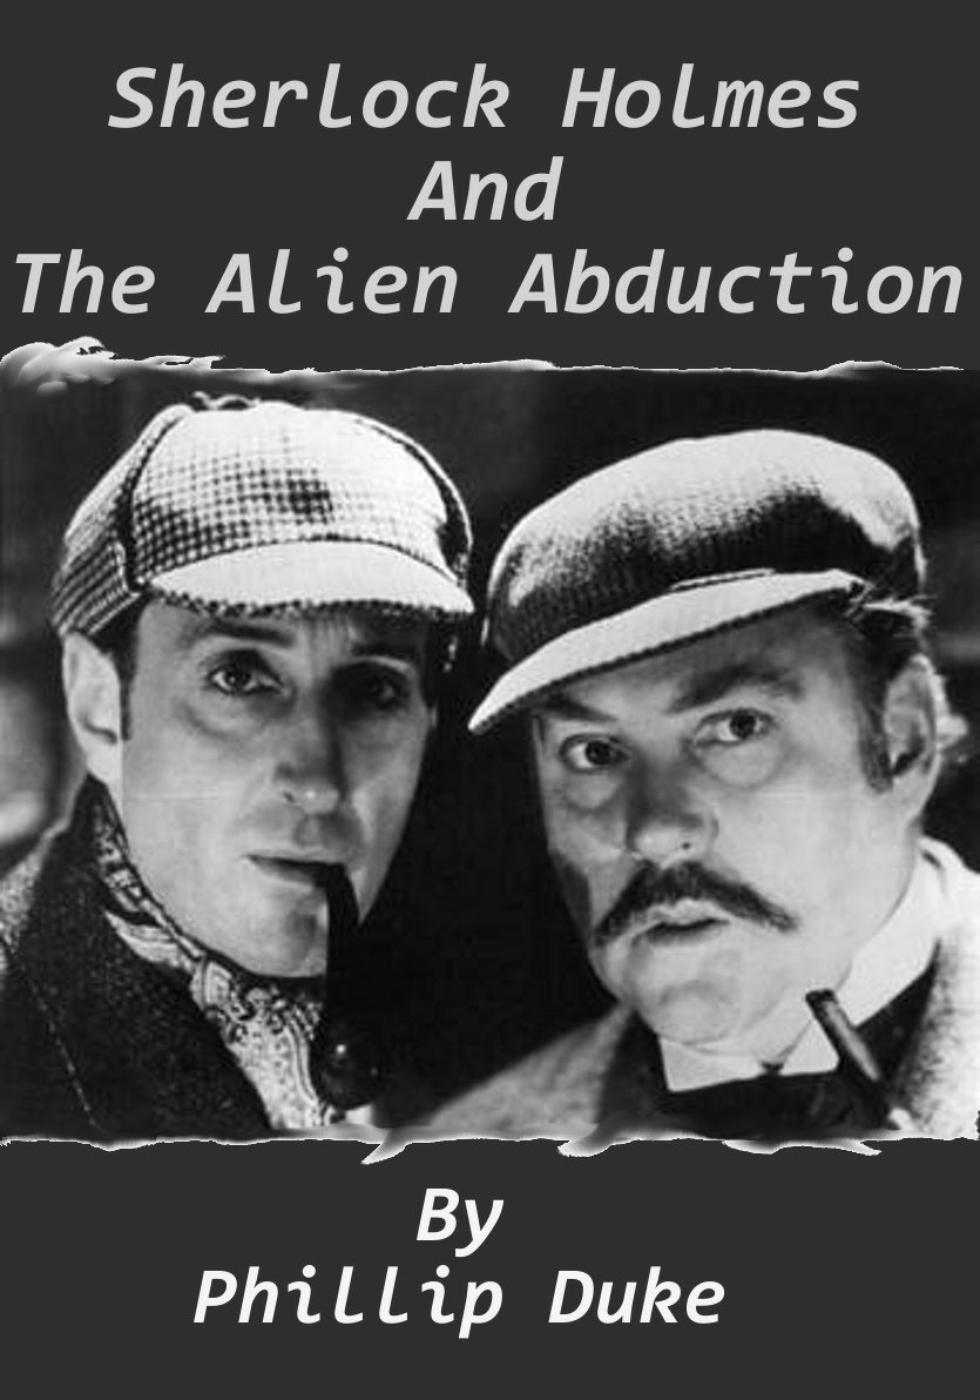 Sherlock Holmes and The Alien Abduction By: Phillip Duke